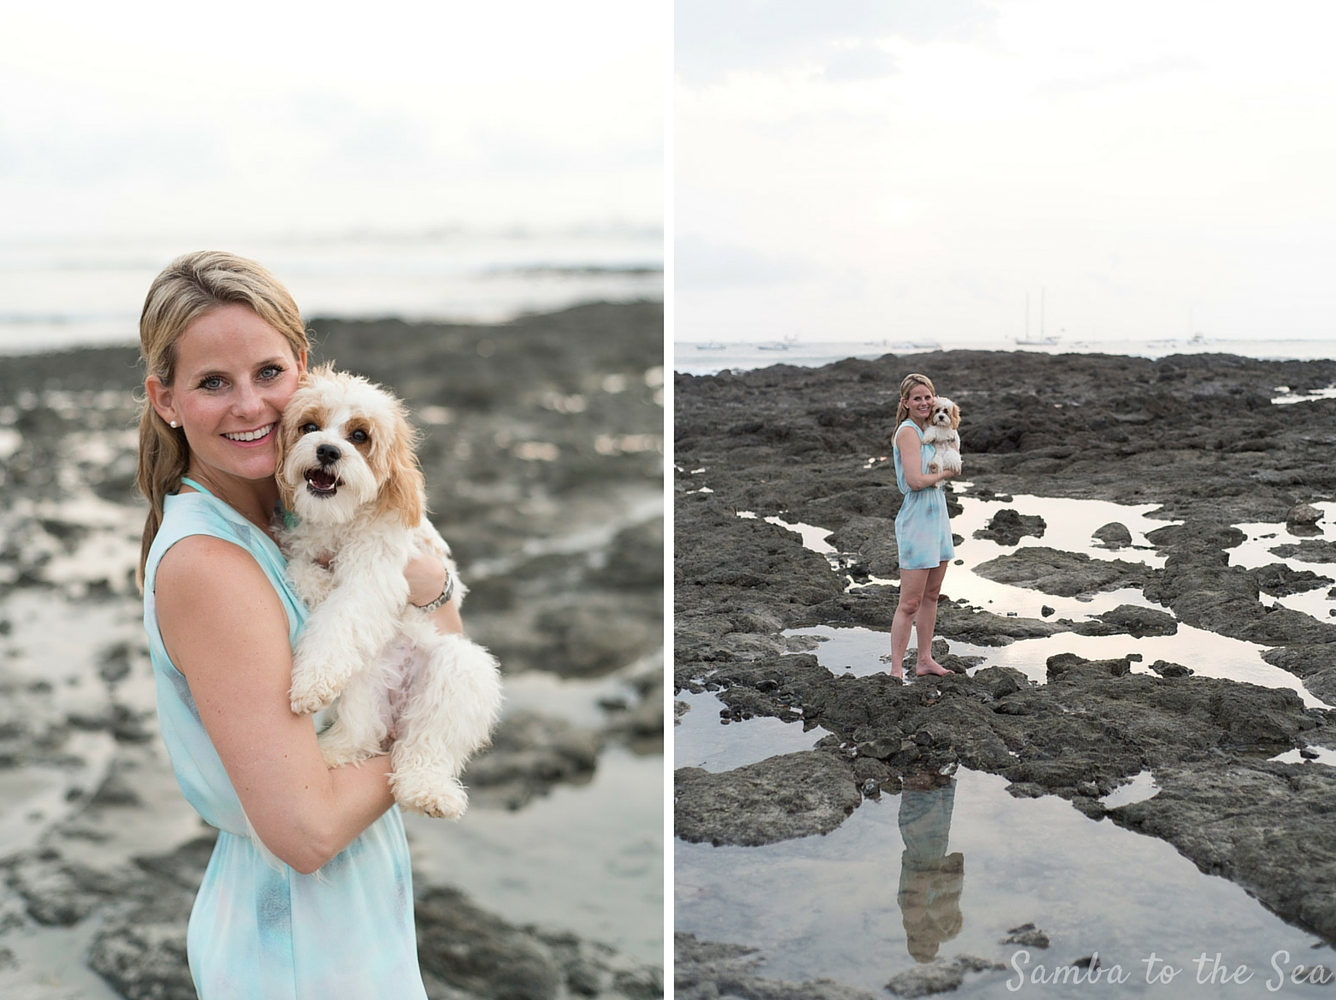 Waffles the Cavapoo and Theresa on the low tide rocks in Tamarindo, Costa Rica. Photographed by Kristen M. Brown, Samba to the Sea Photography. Blue dress is by Parker NYC.